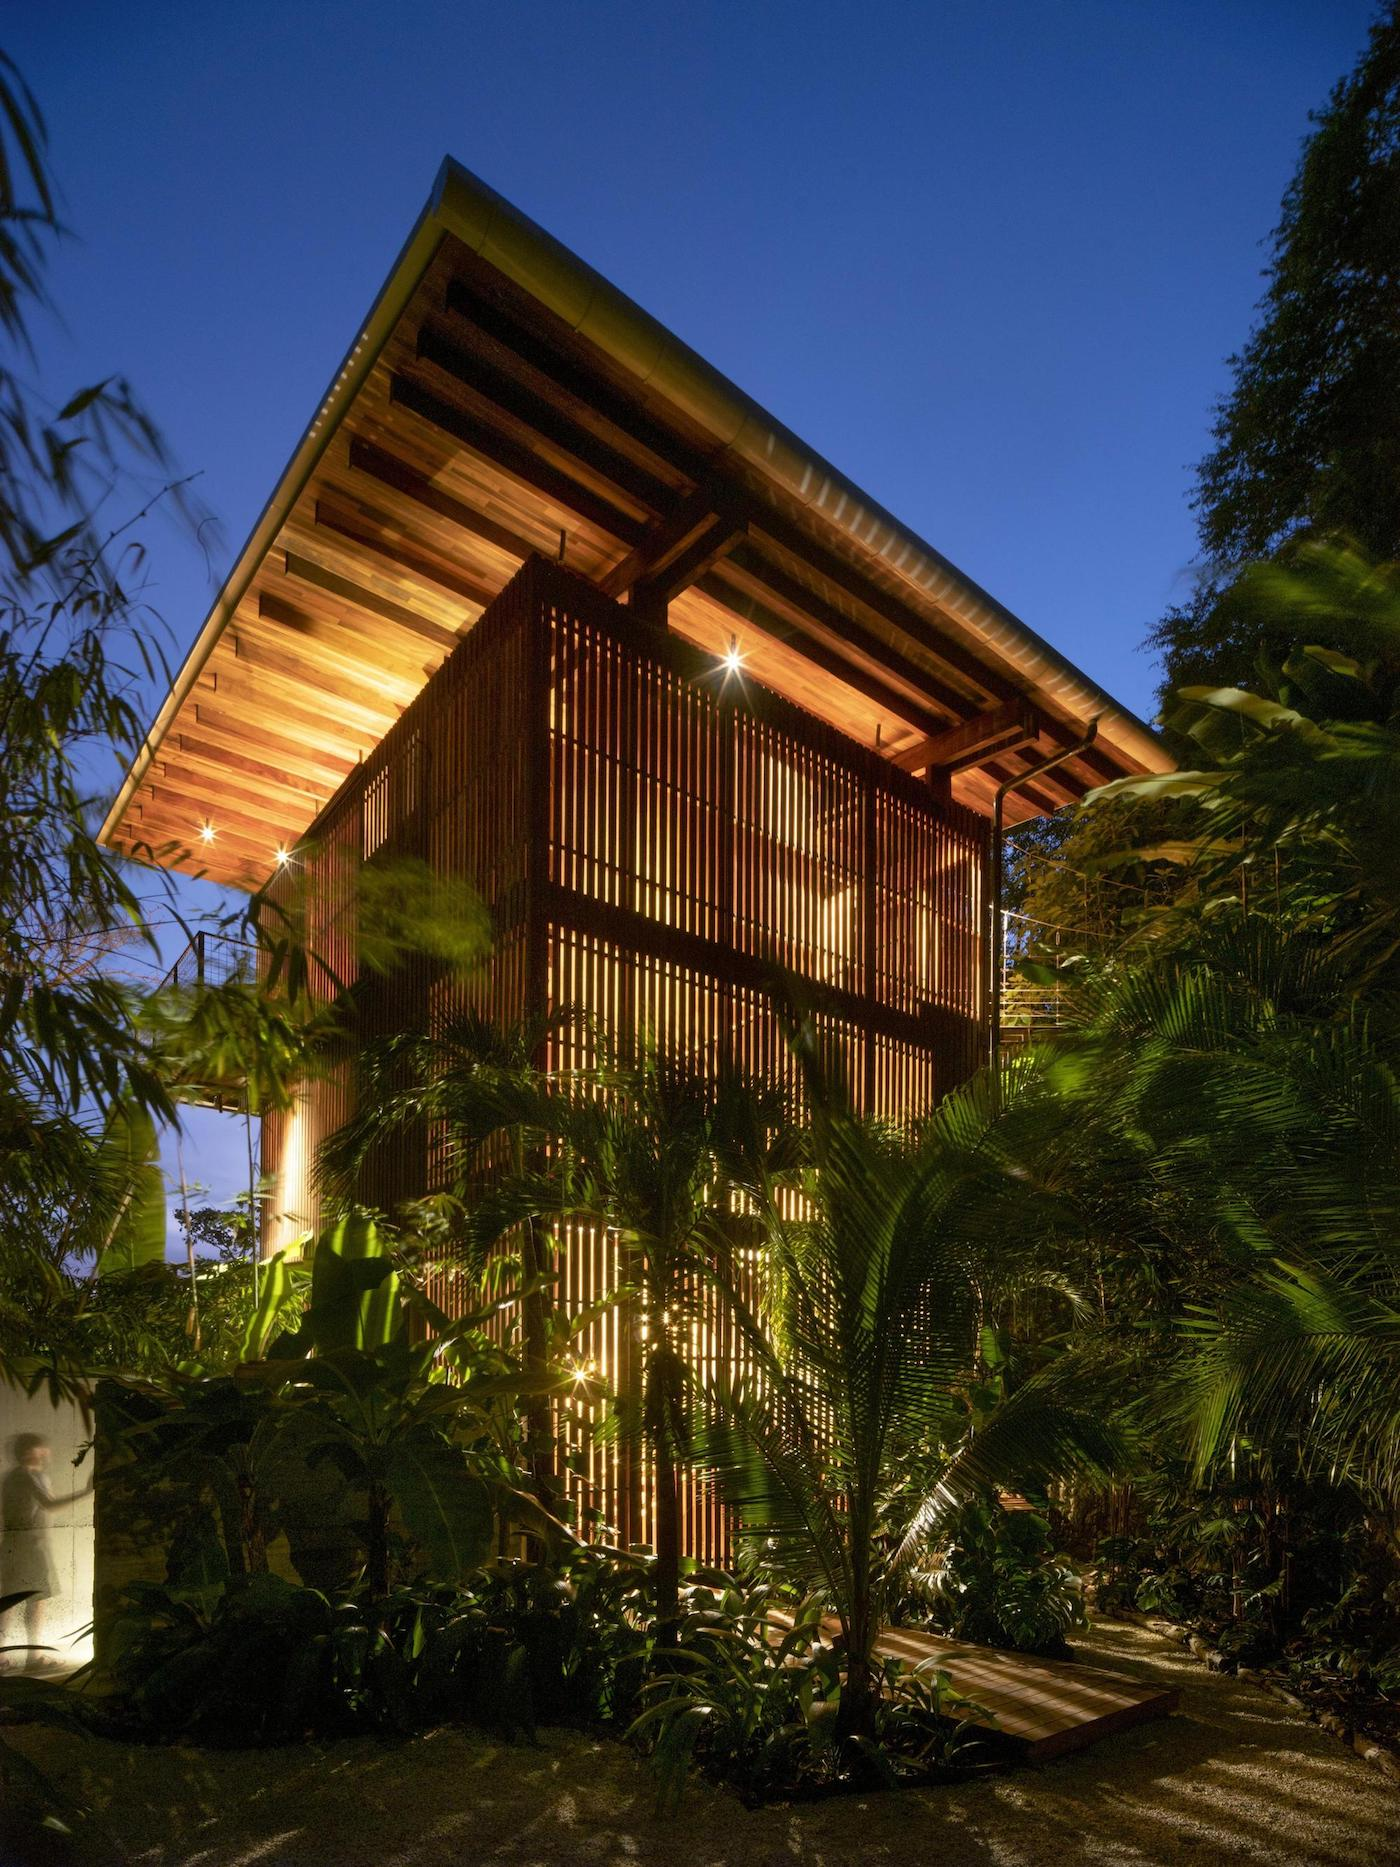 Night time external view of open-air timber home